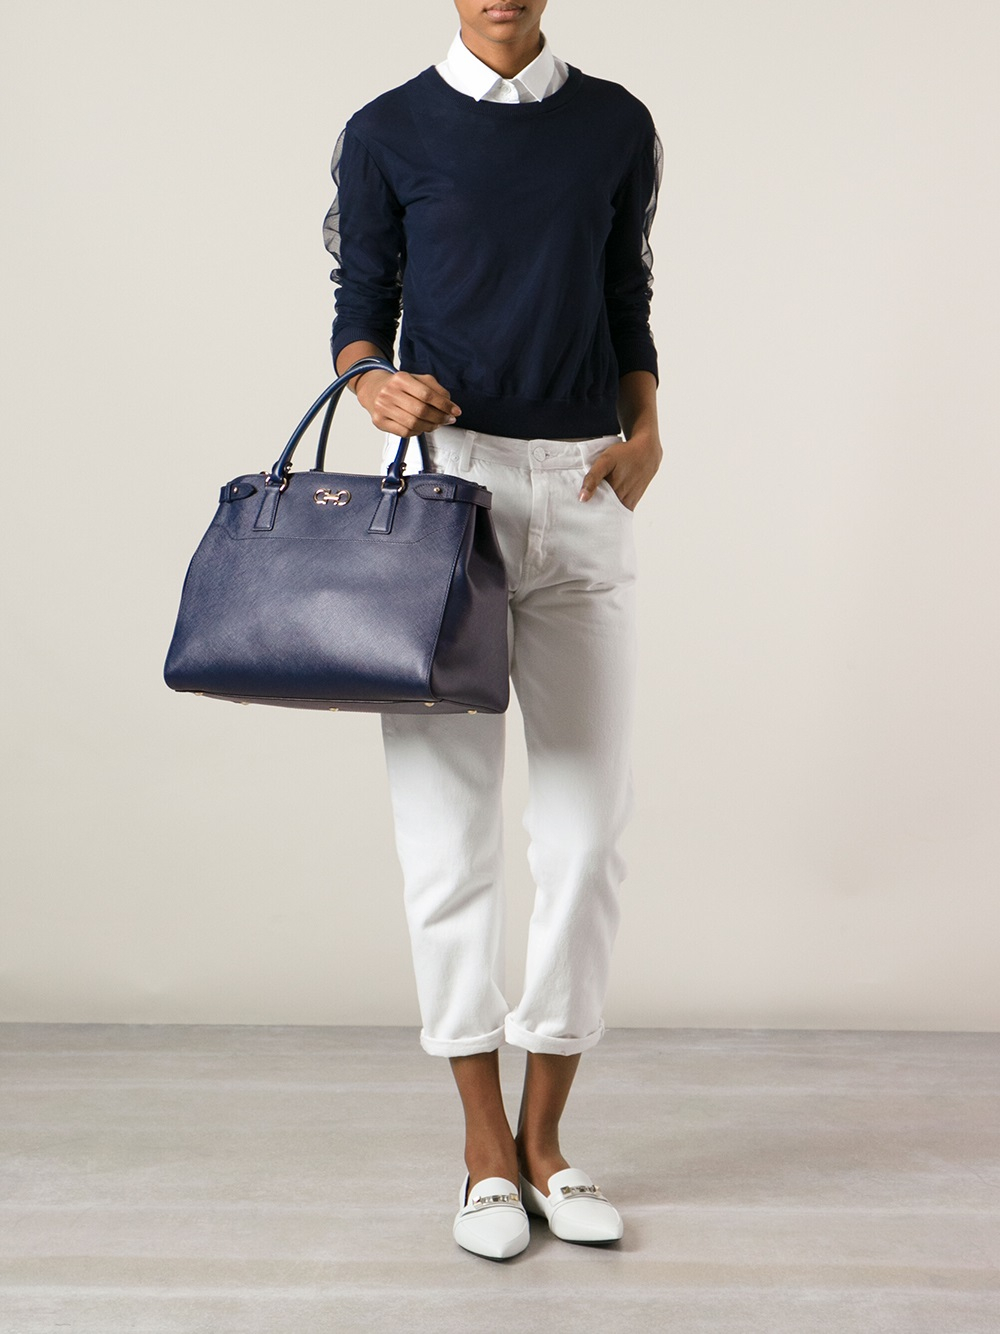 Ferragamo Large Tote Bag in Blue